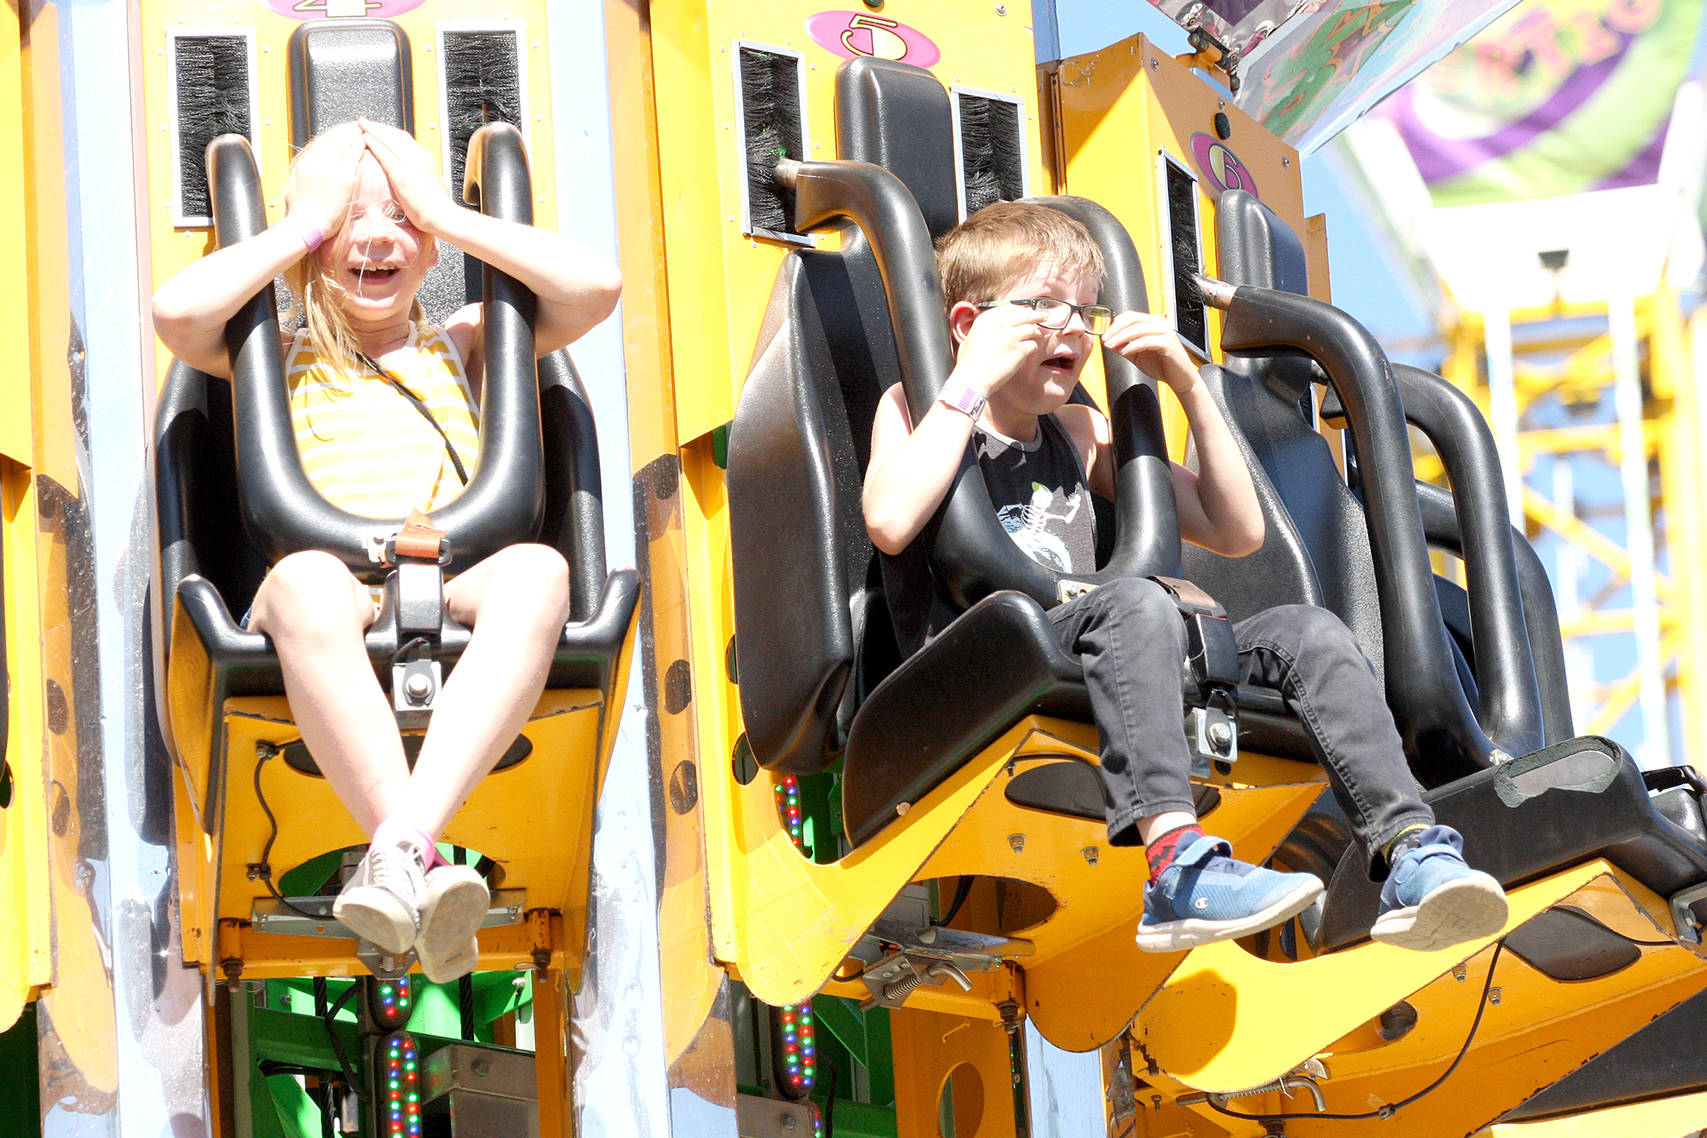 Siblings Kylie and Landyn Pasemko of Vernon go for a thrill ride on the Super Shot at the midway during the IPE in Armstrong, which continues through to Sunday, Sept. 1 (Jennifer Smith - Morning Star)